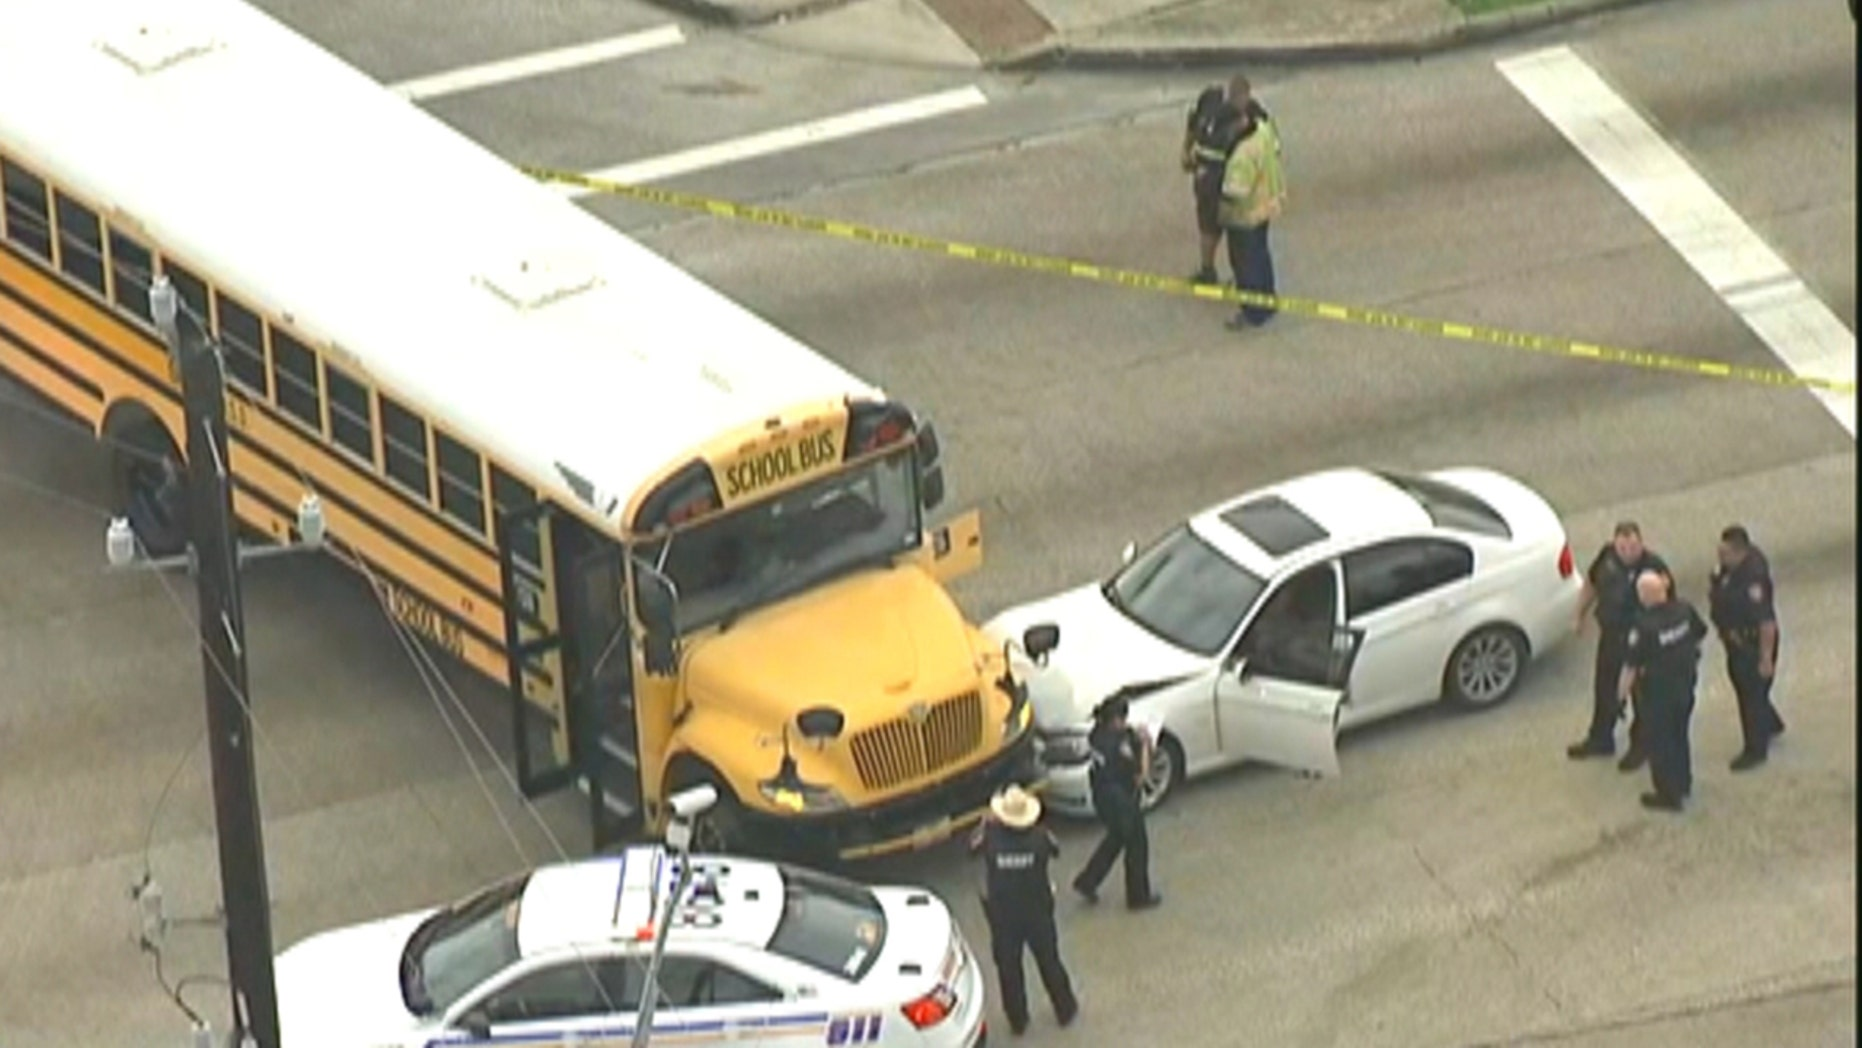 A man with a gunshot wound passed out behind the wheel of a white BMW and crashed into a bus full of middle school students in Texas.